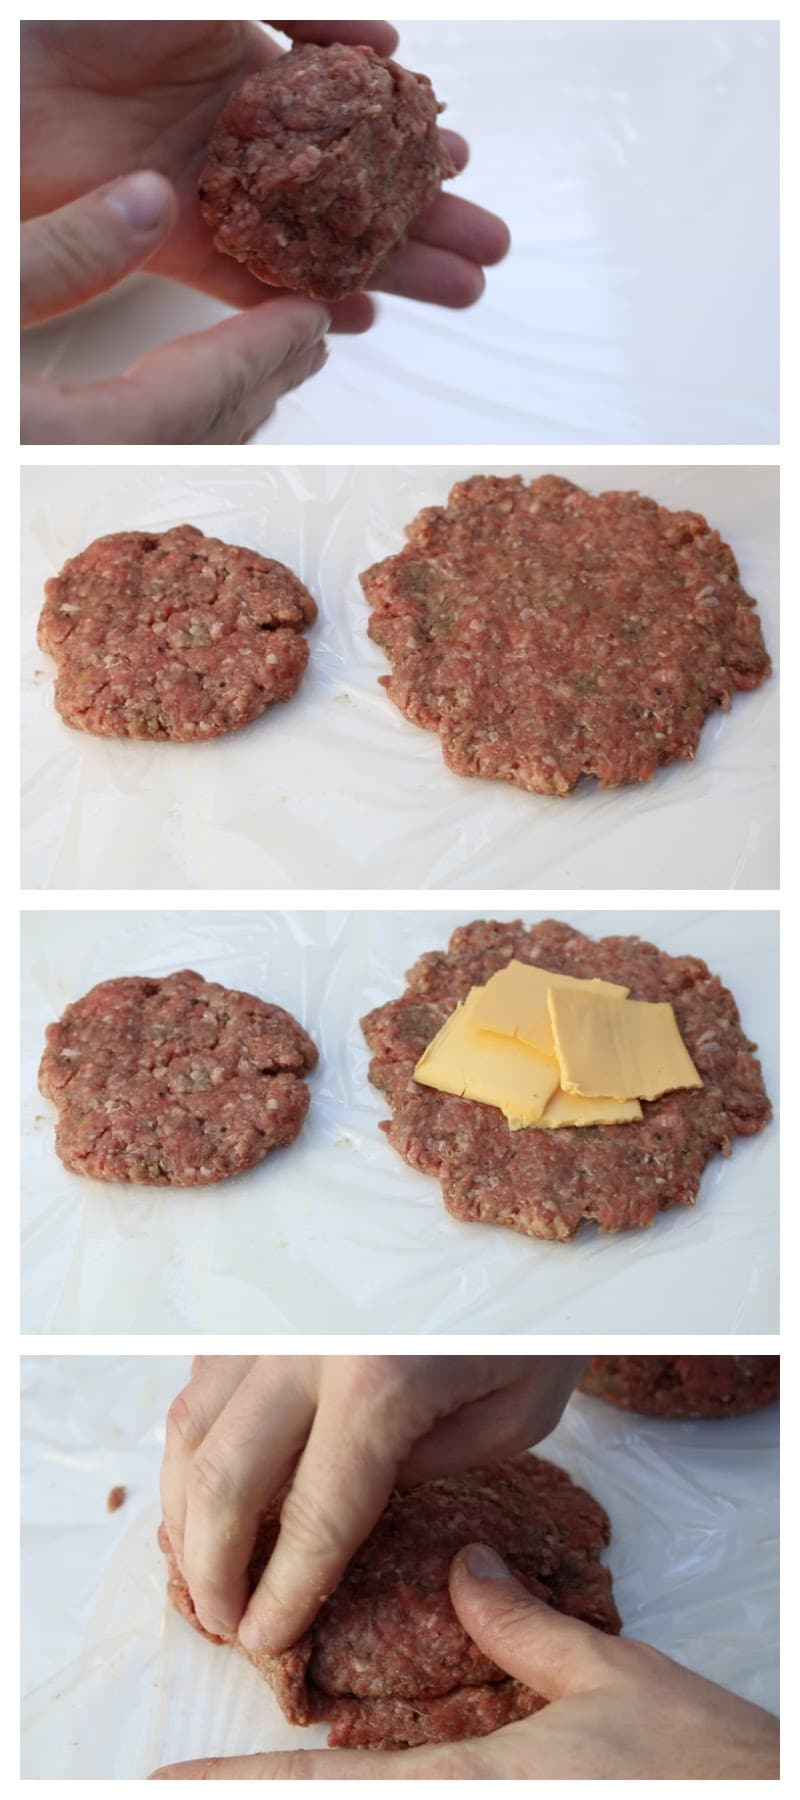 Ground burger process photos showing how to form them into a meatball, flatten into patty, cheese stuffing, and forming patty